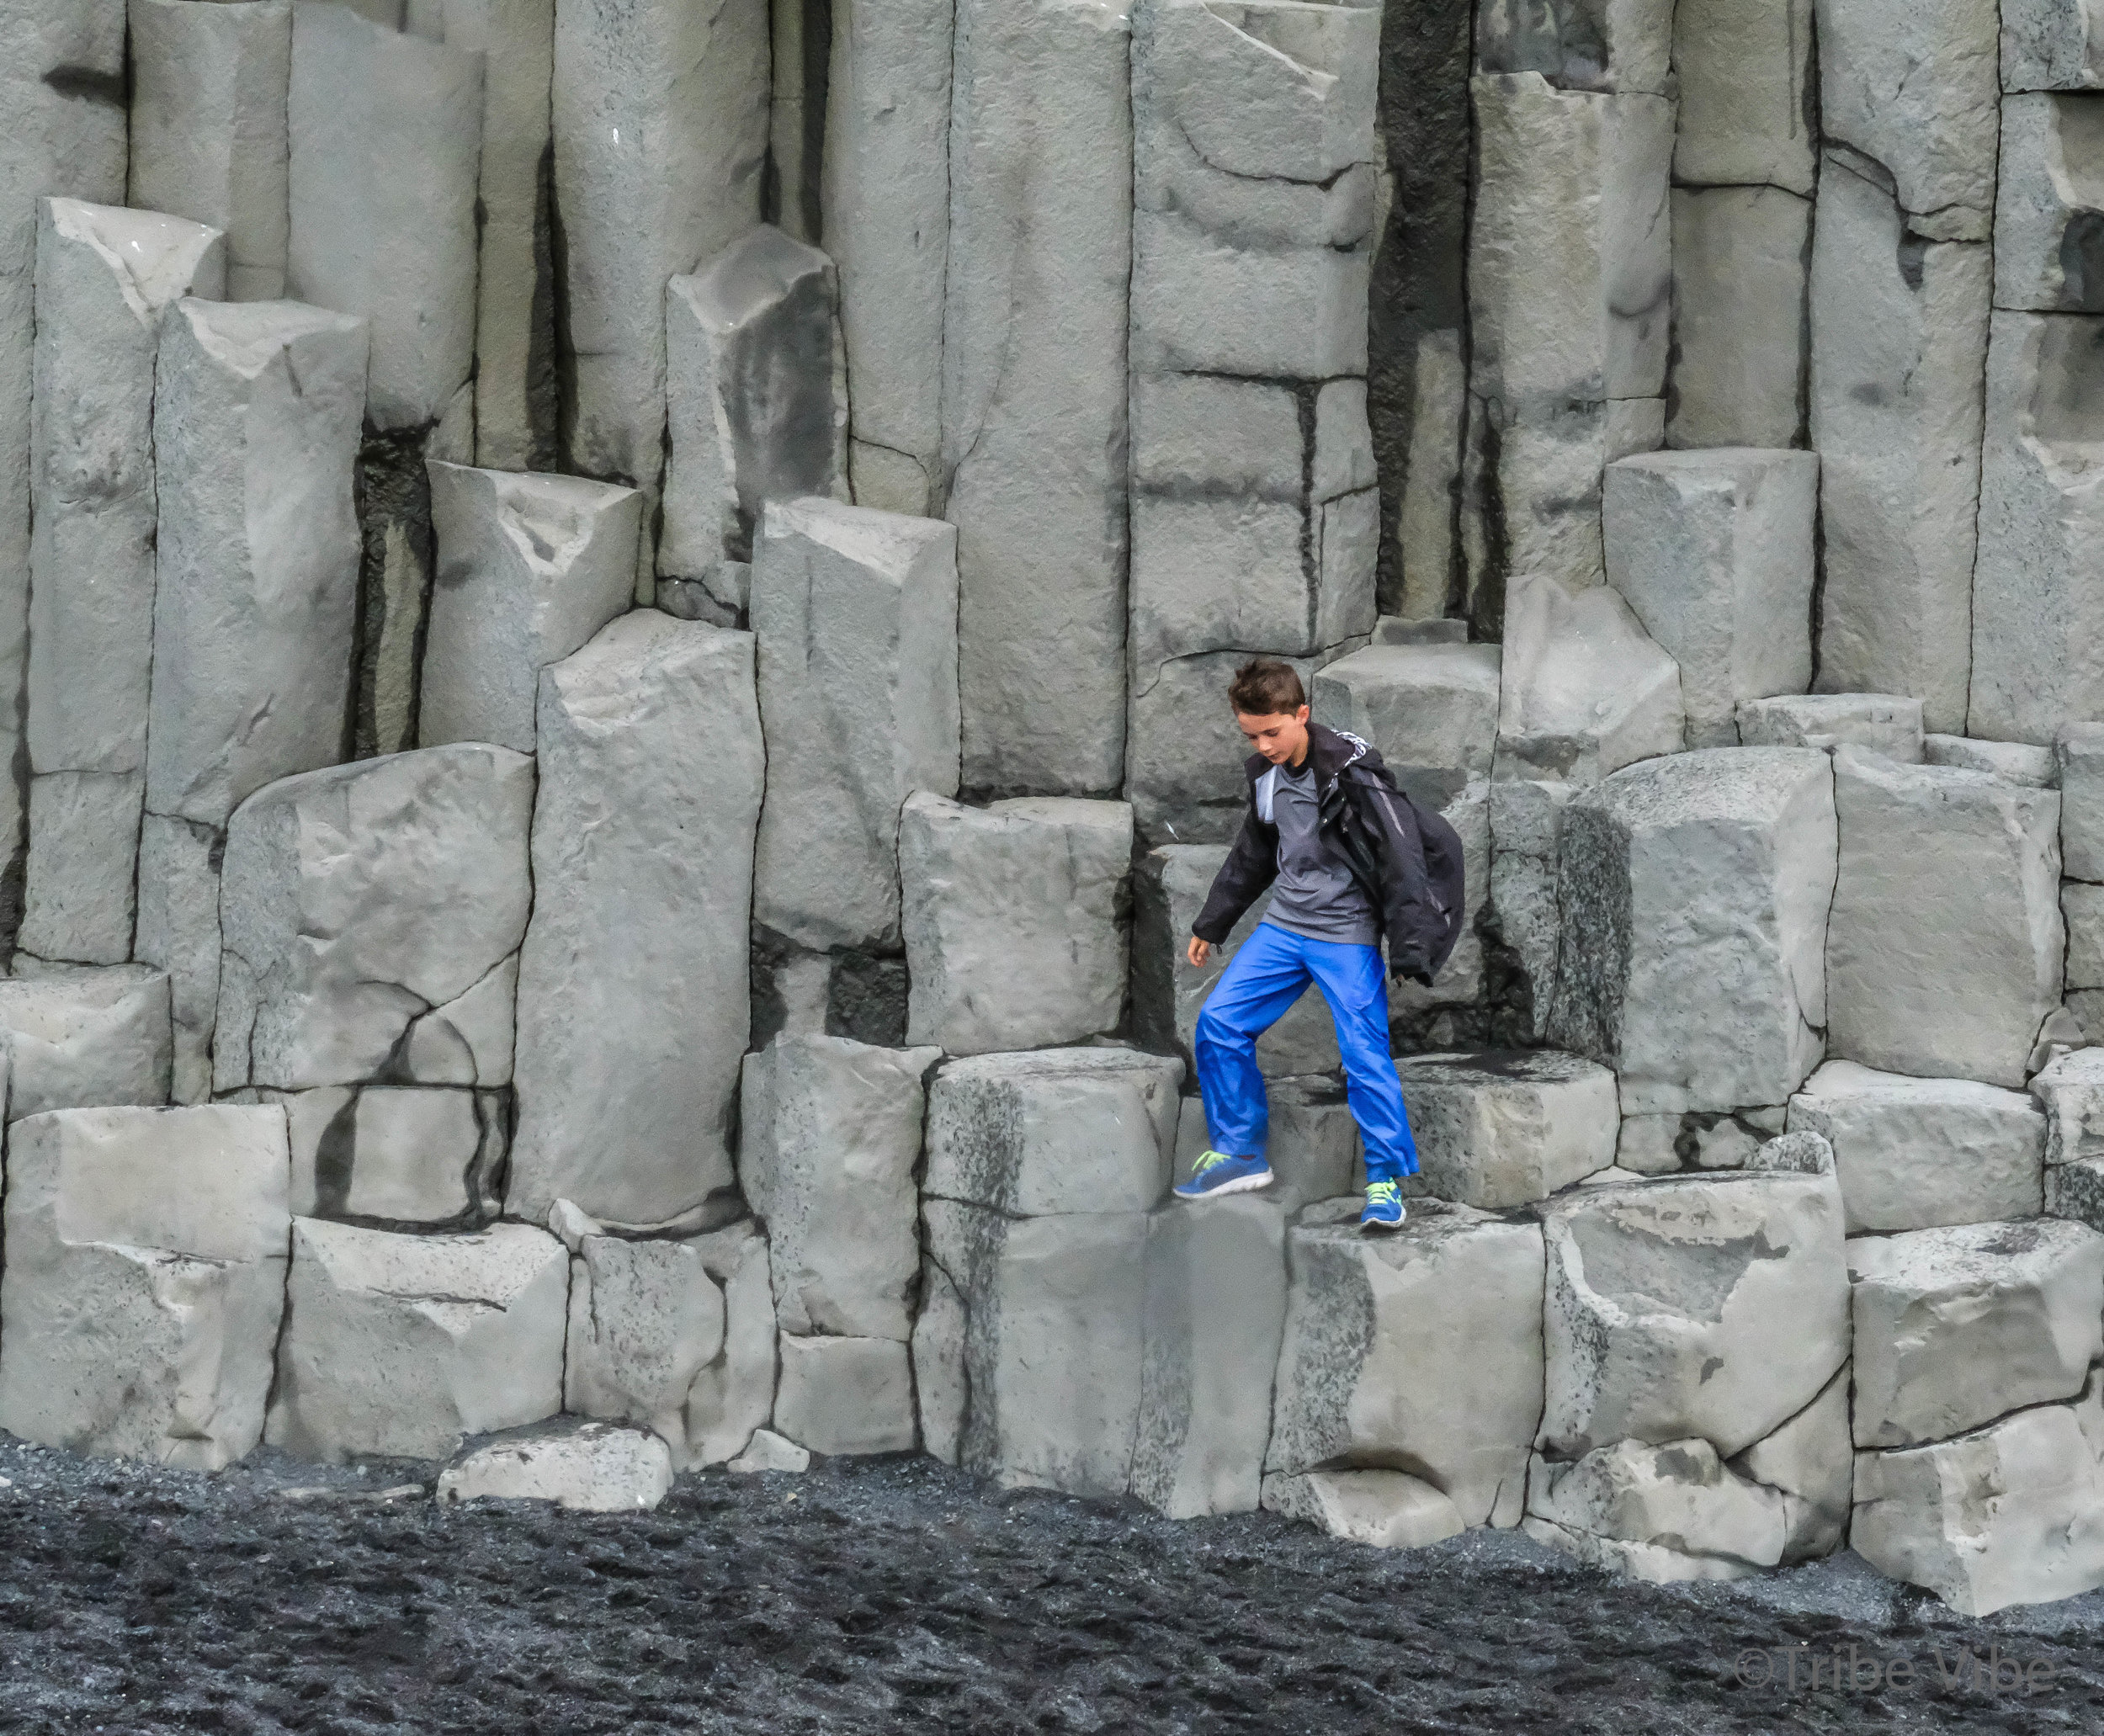 climbing the basalt rocks in Reynisdrangar, Iceland. Family trip to Iceland.